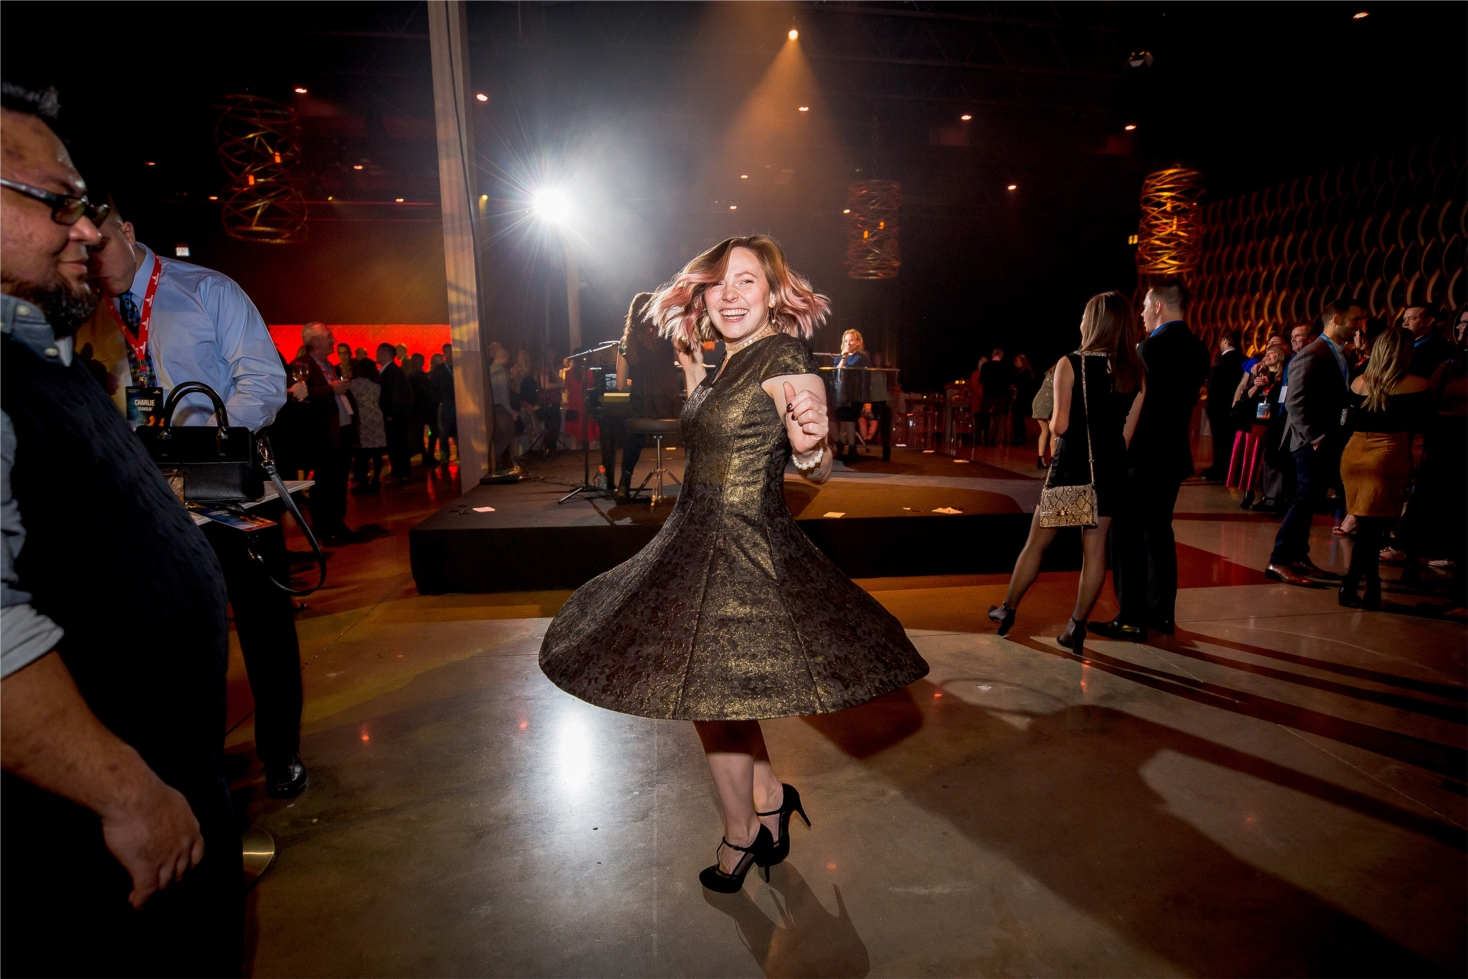 Lindsey Todt dances the night away at Employee Holiday Party 2019.